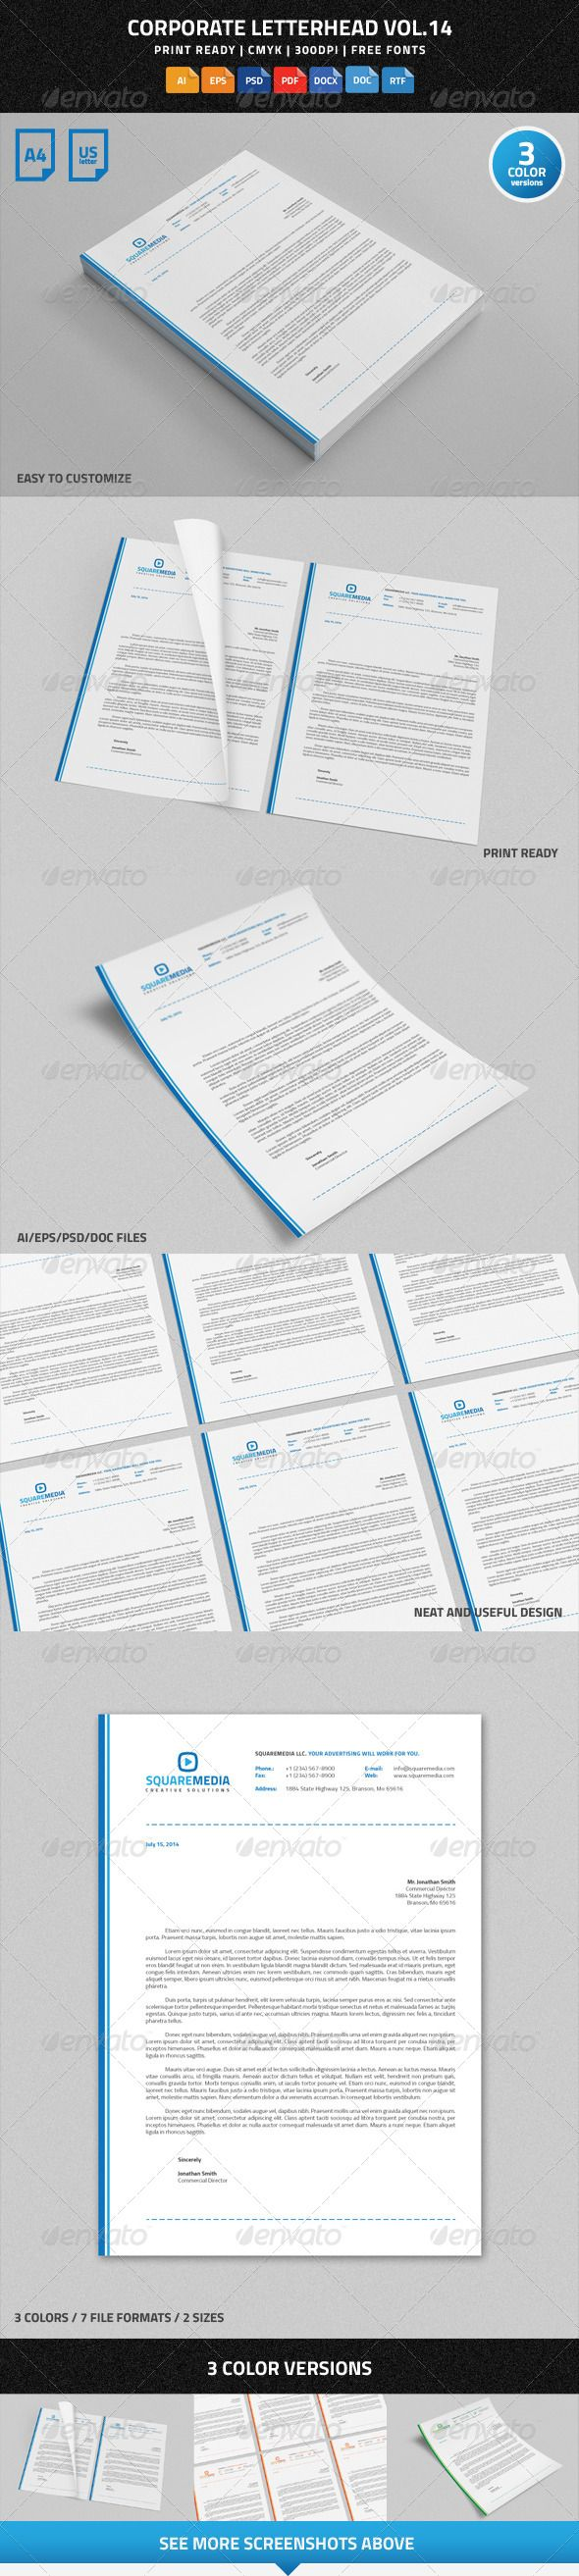 Corporate Letterhead Vol.14 With MS Word DOC/DOCX  Corporate Word Templates